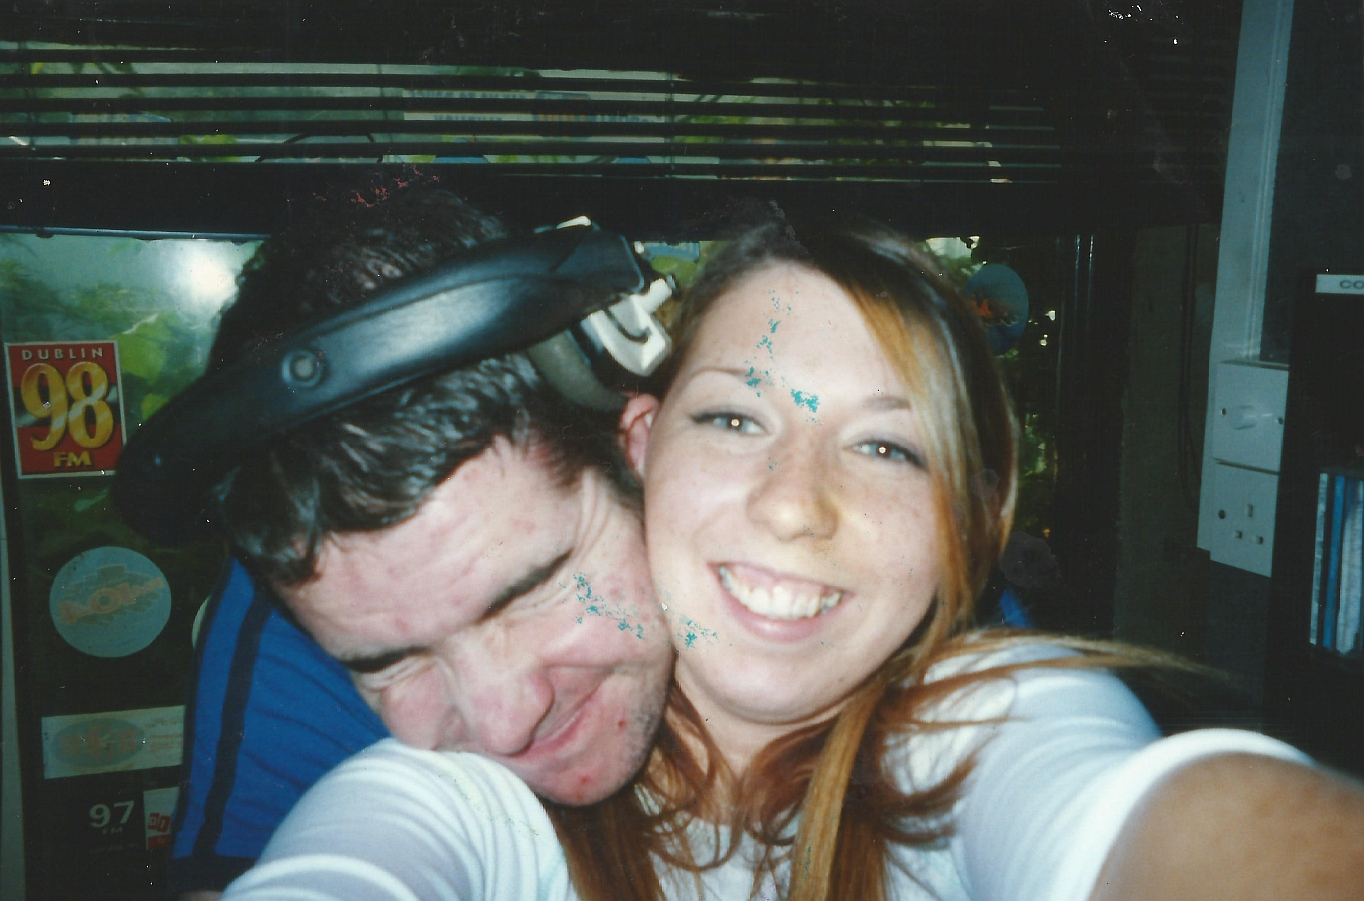 From Friday 13th September 2002 this is Mike O'Brien and Nikki (pictured) on Drive for Freedom 92FM, the Dublin pirate station. We join the shenanigans at 5pm.